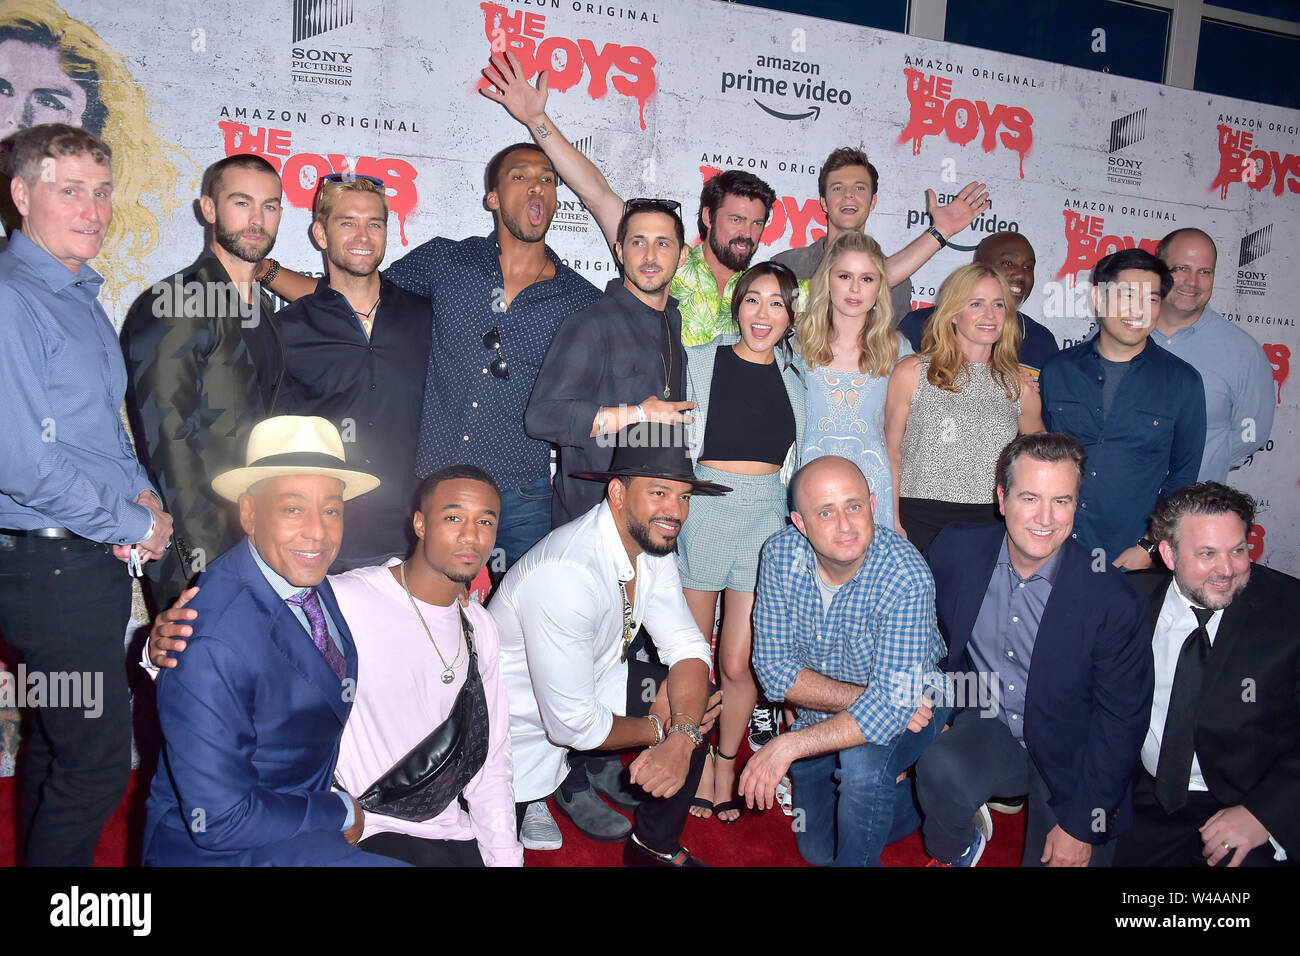 San Diego, USA  19th July, 2019  'The Boys' cast and crew at